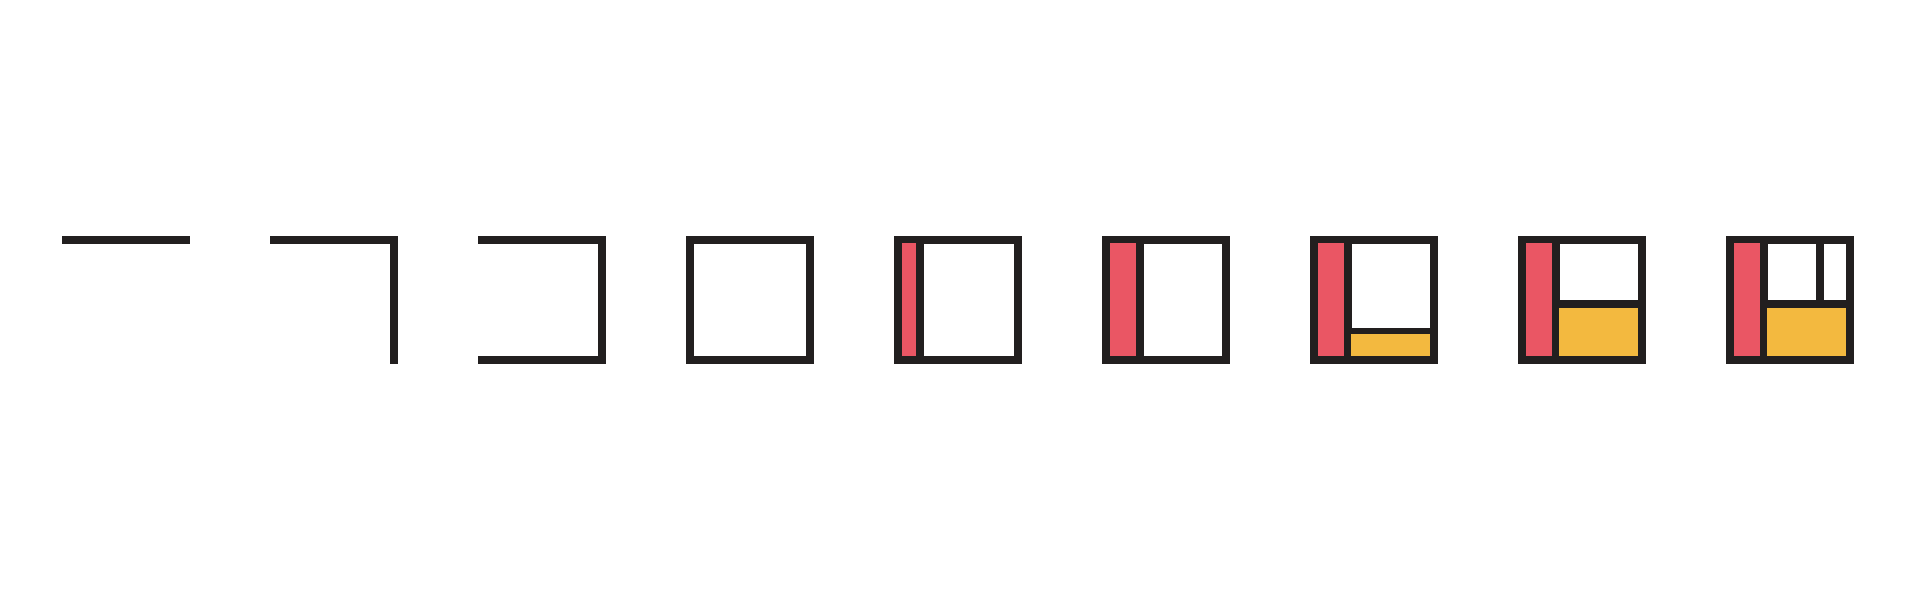 Svg box animated. How to create a